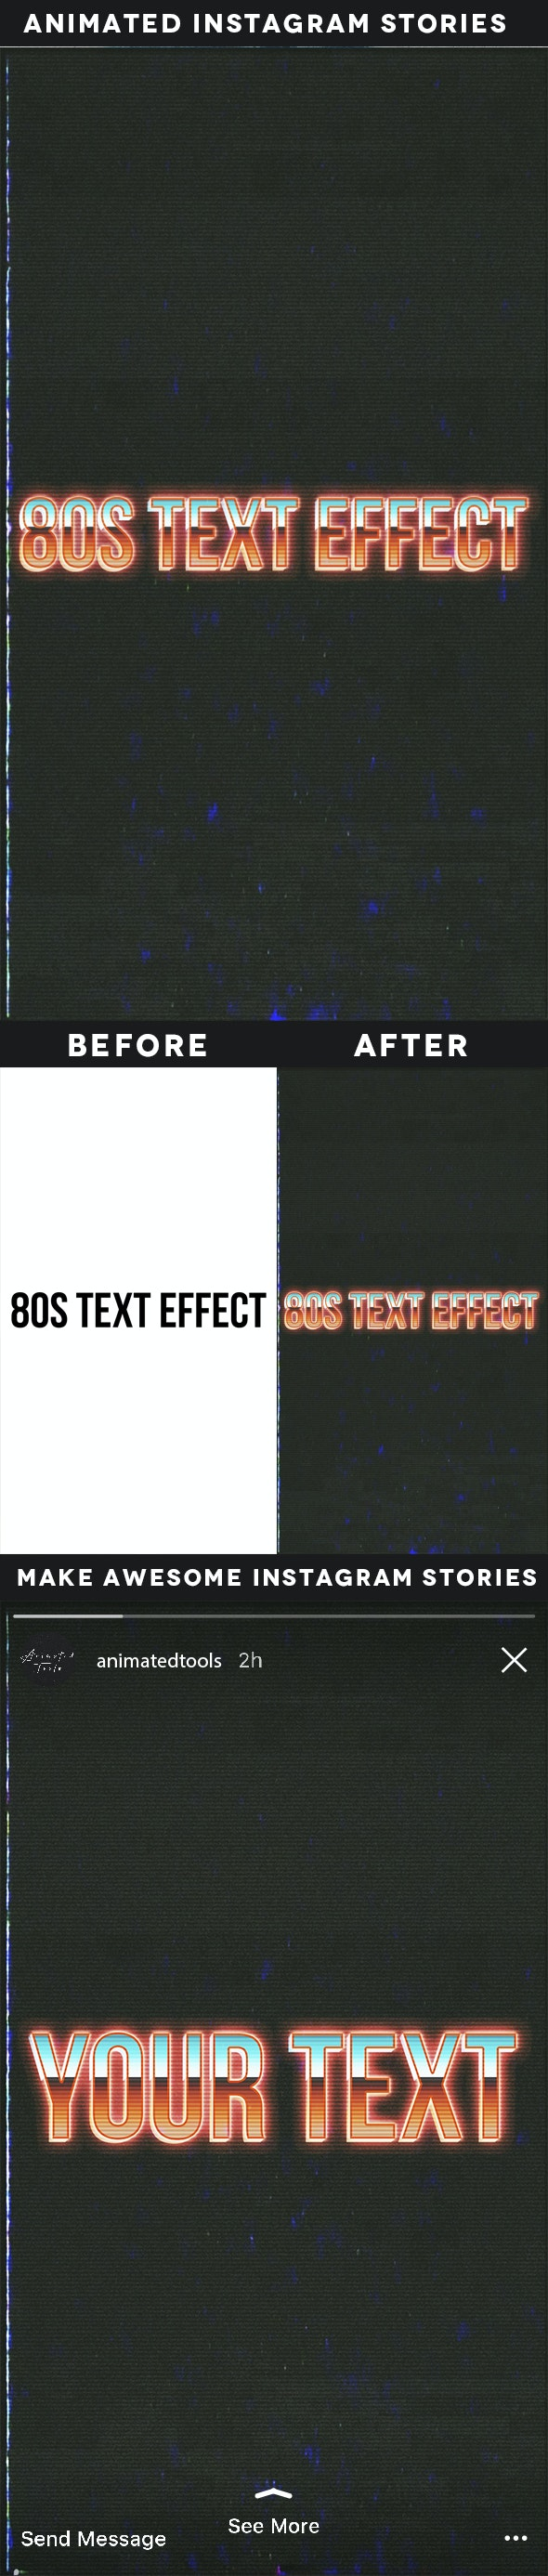 Animated Instagram Stories 80S Text Effect - Text Effects Actions